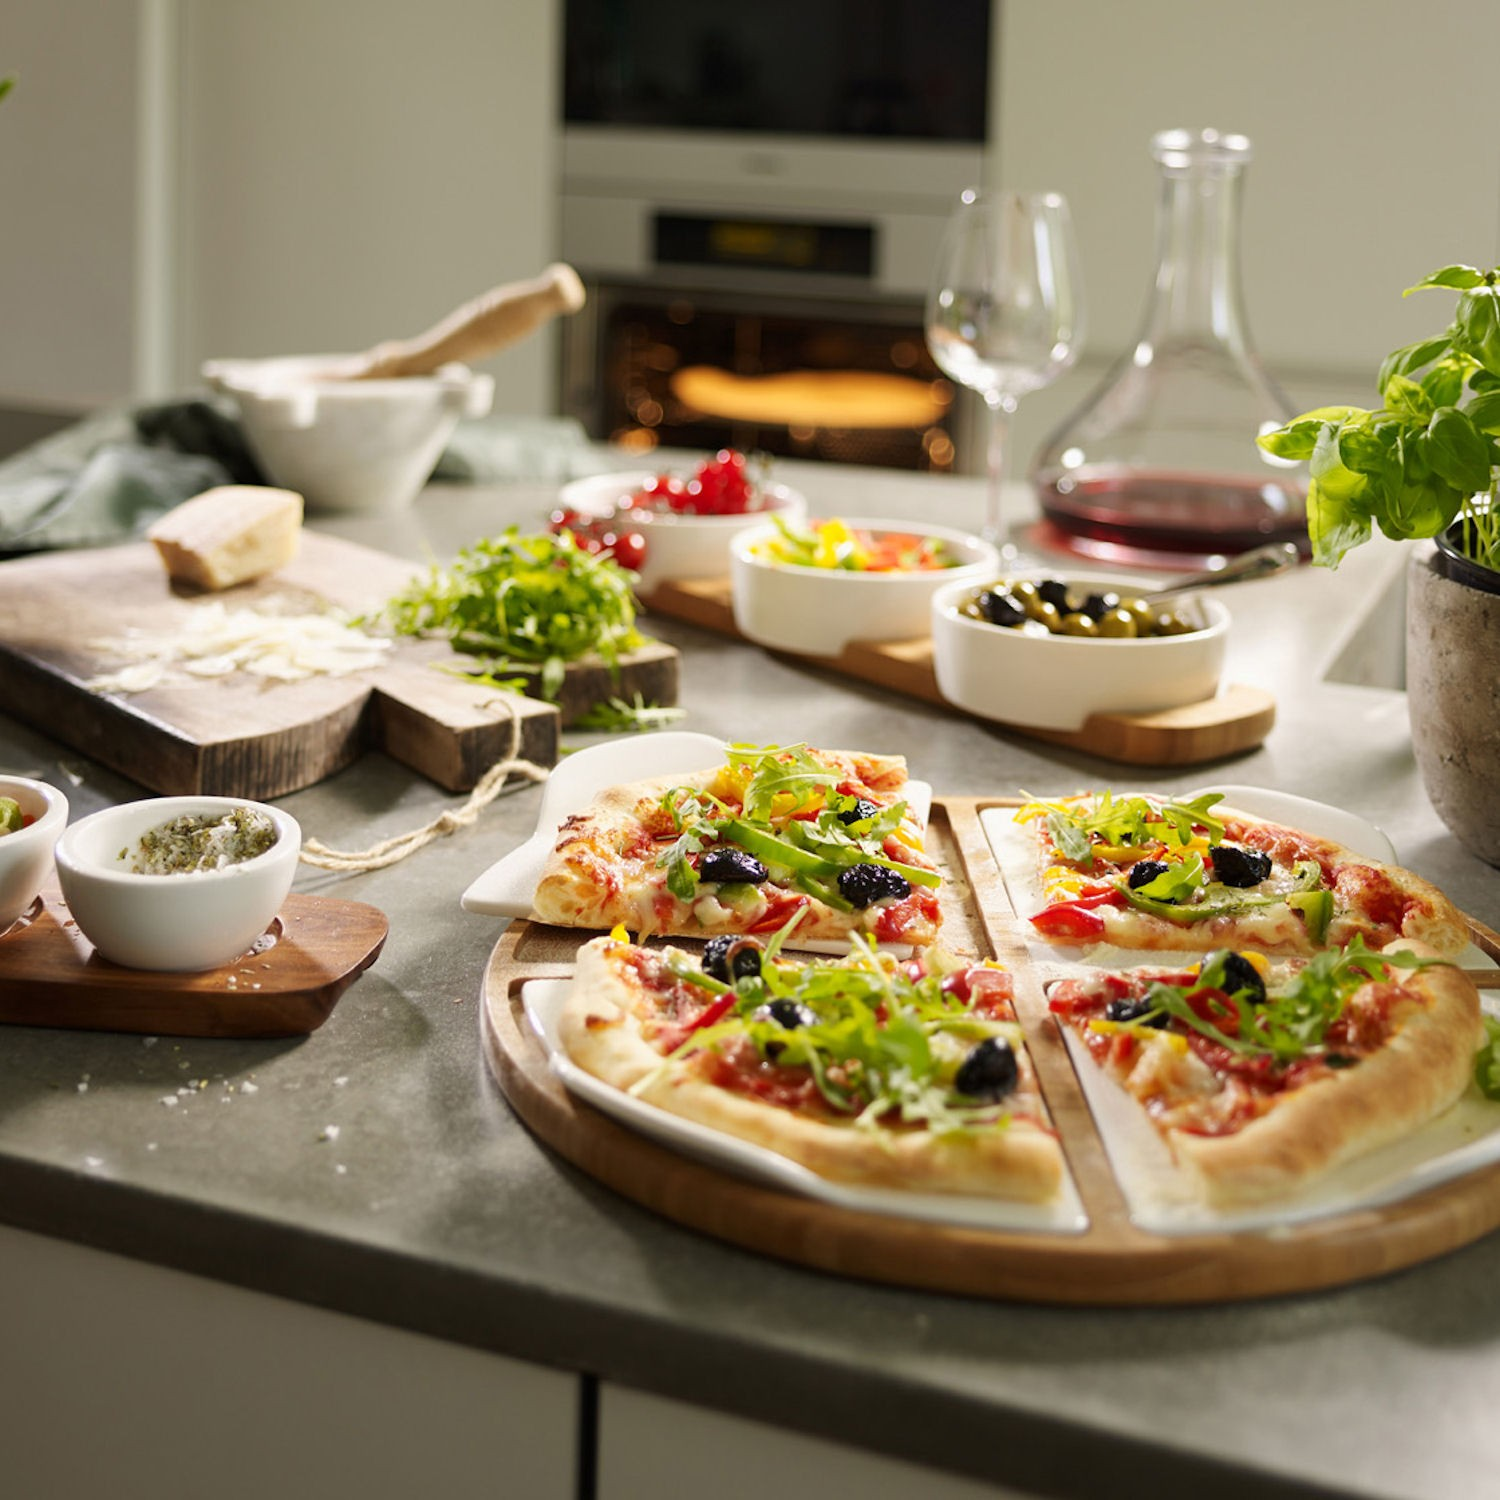 Villeroy & Boch Pizza Passion talerz do pizzy, 4 cz.